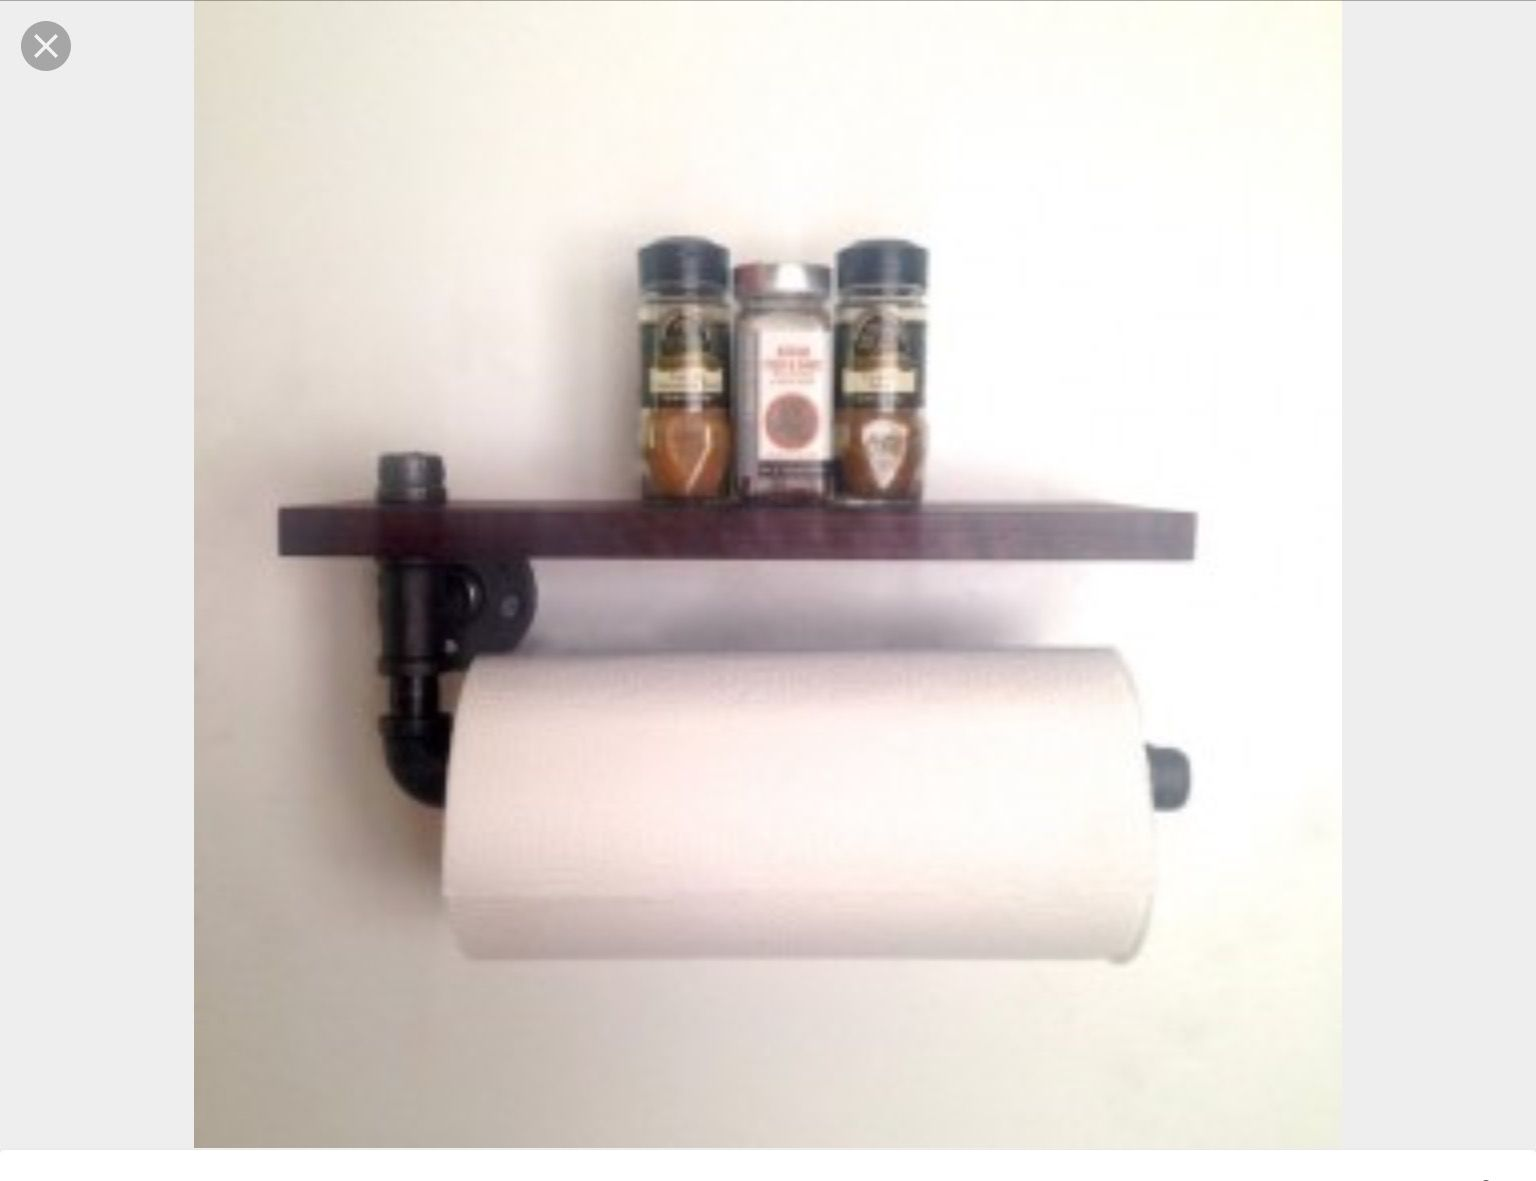 Unique Paper Towel Holders Glamorous Pinkristina Stout On Kitchen Design  Pinterest  Pipe Table Design Inspiration